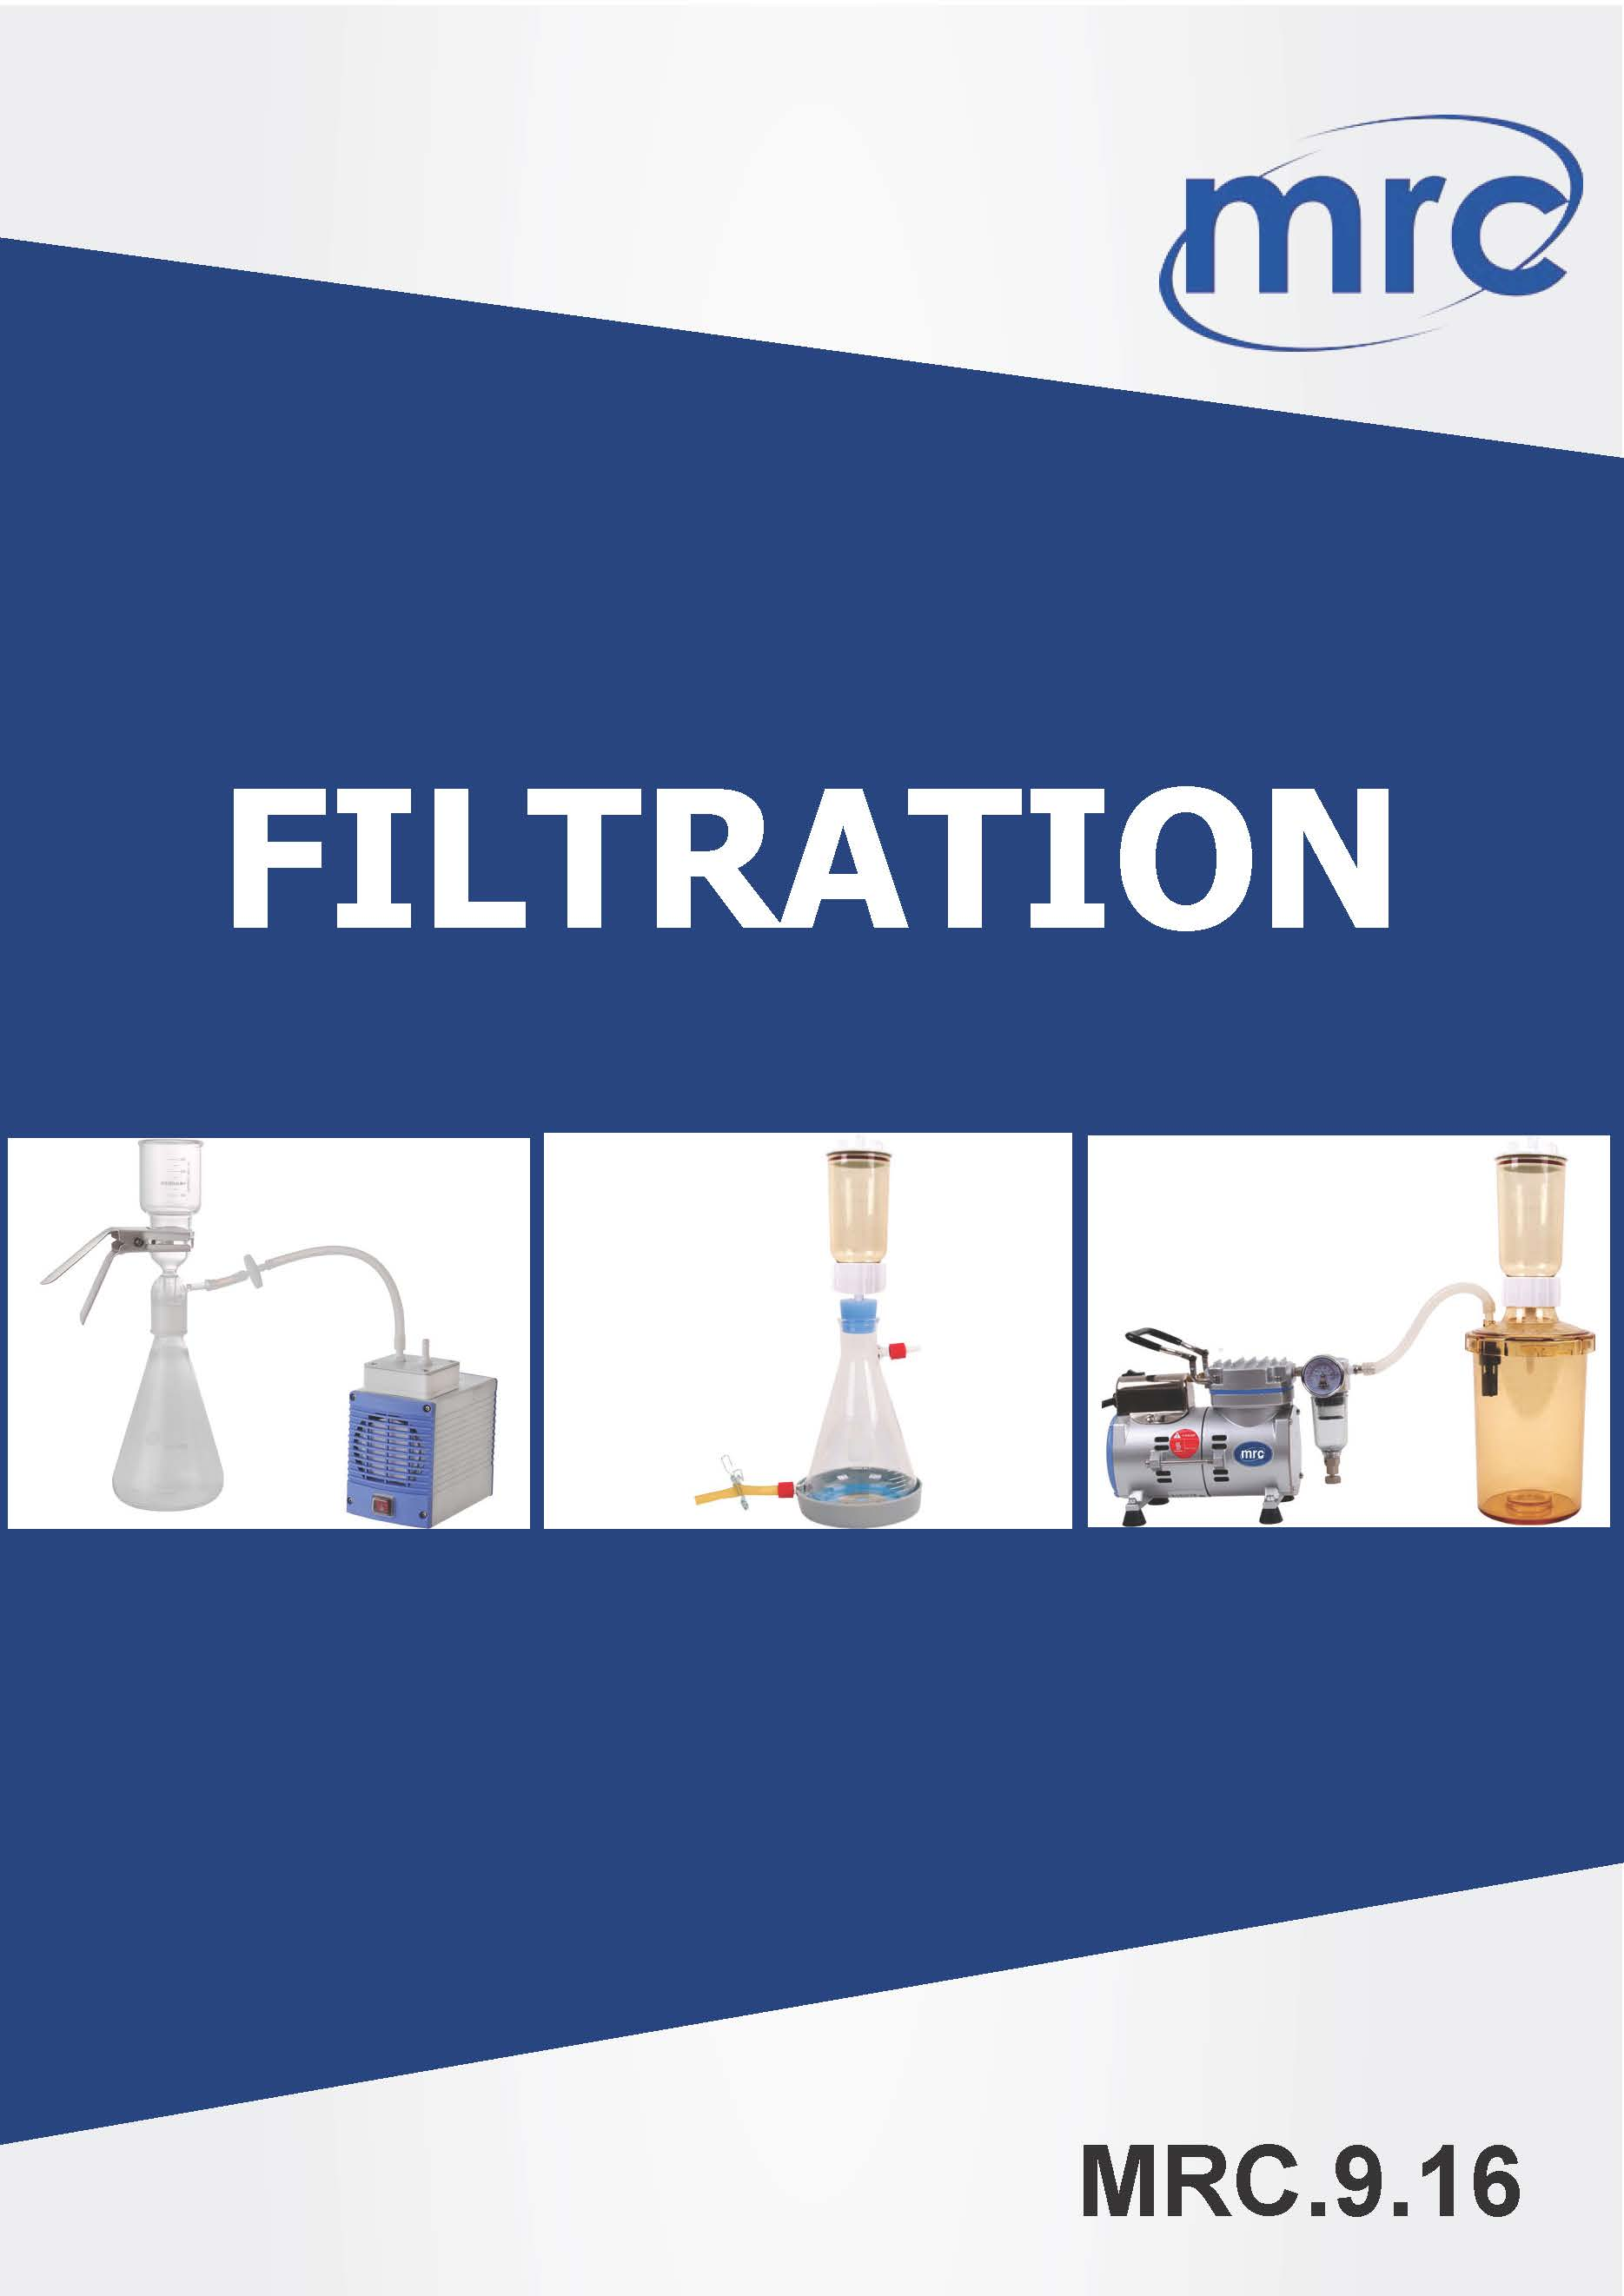 FILTRATION-CATALOG-COVER.jpg